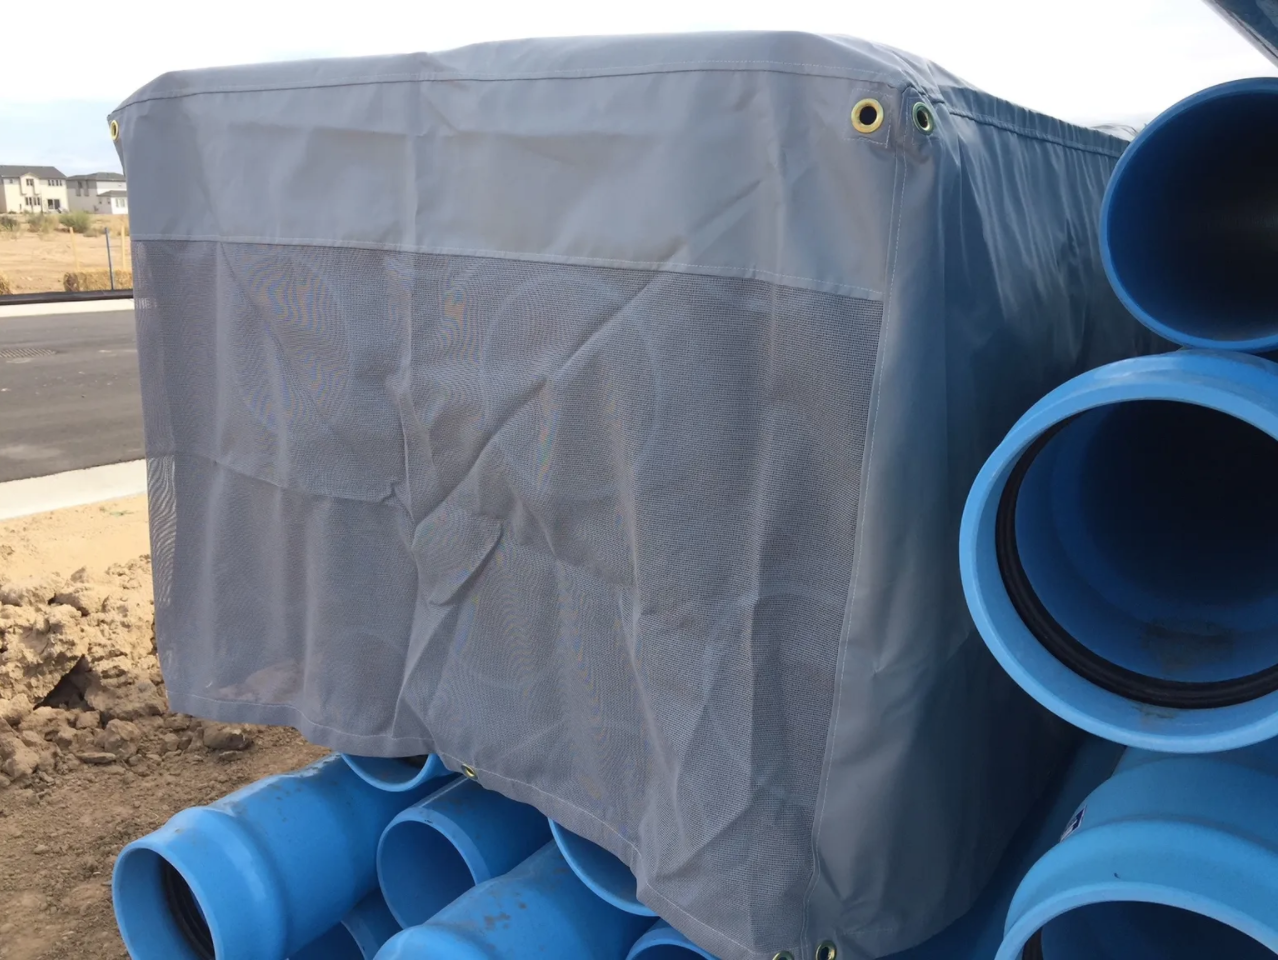 Large industrial pvc pipes